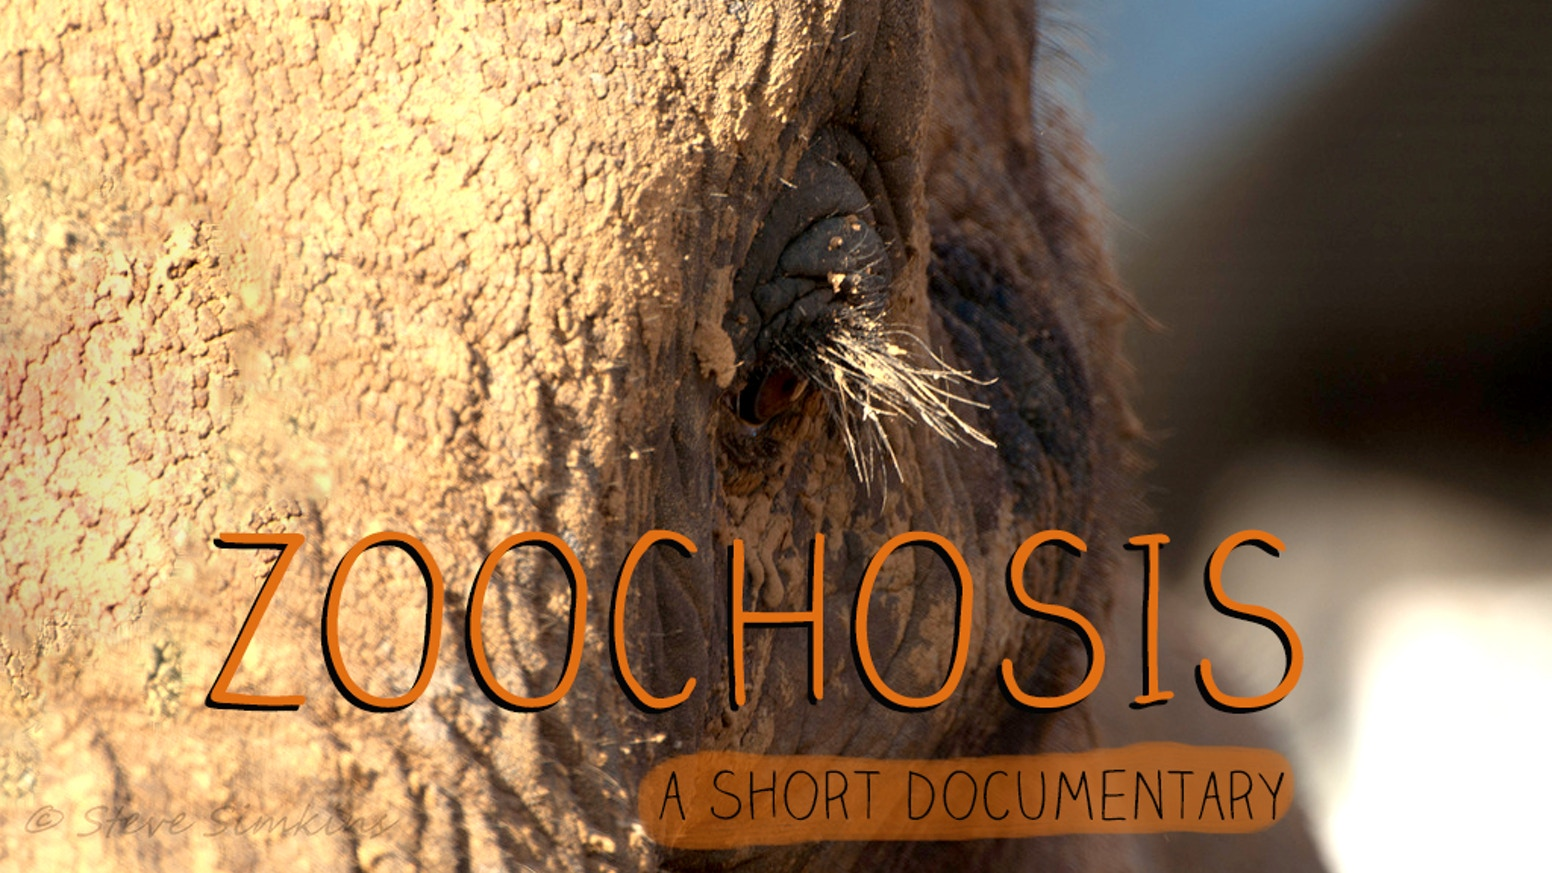 A short documentary that studies the abnormal behavior patterns of animals housed in zoos